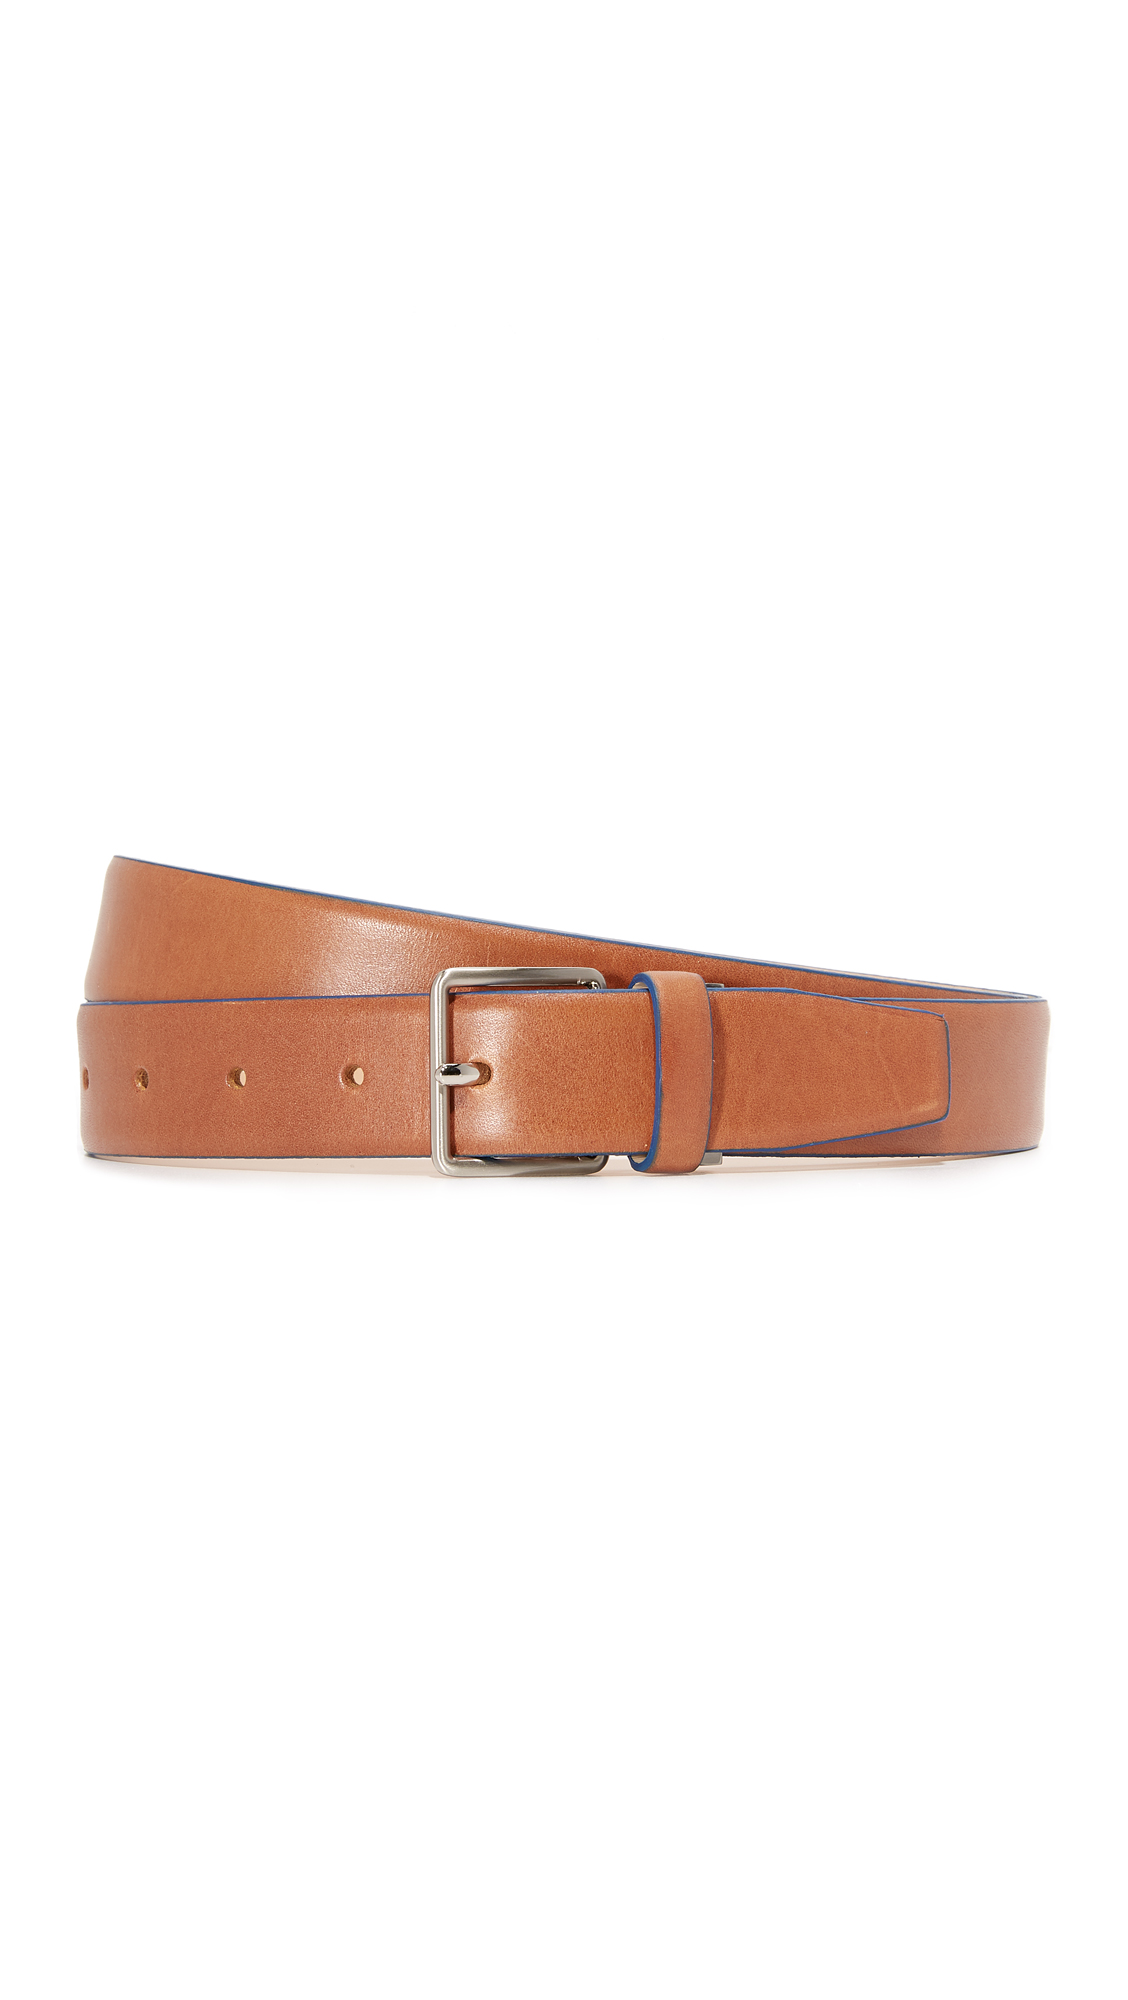 Acne Studios Aryx Leather Belt - Brown